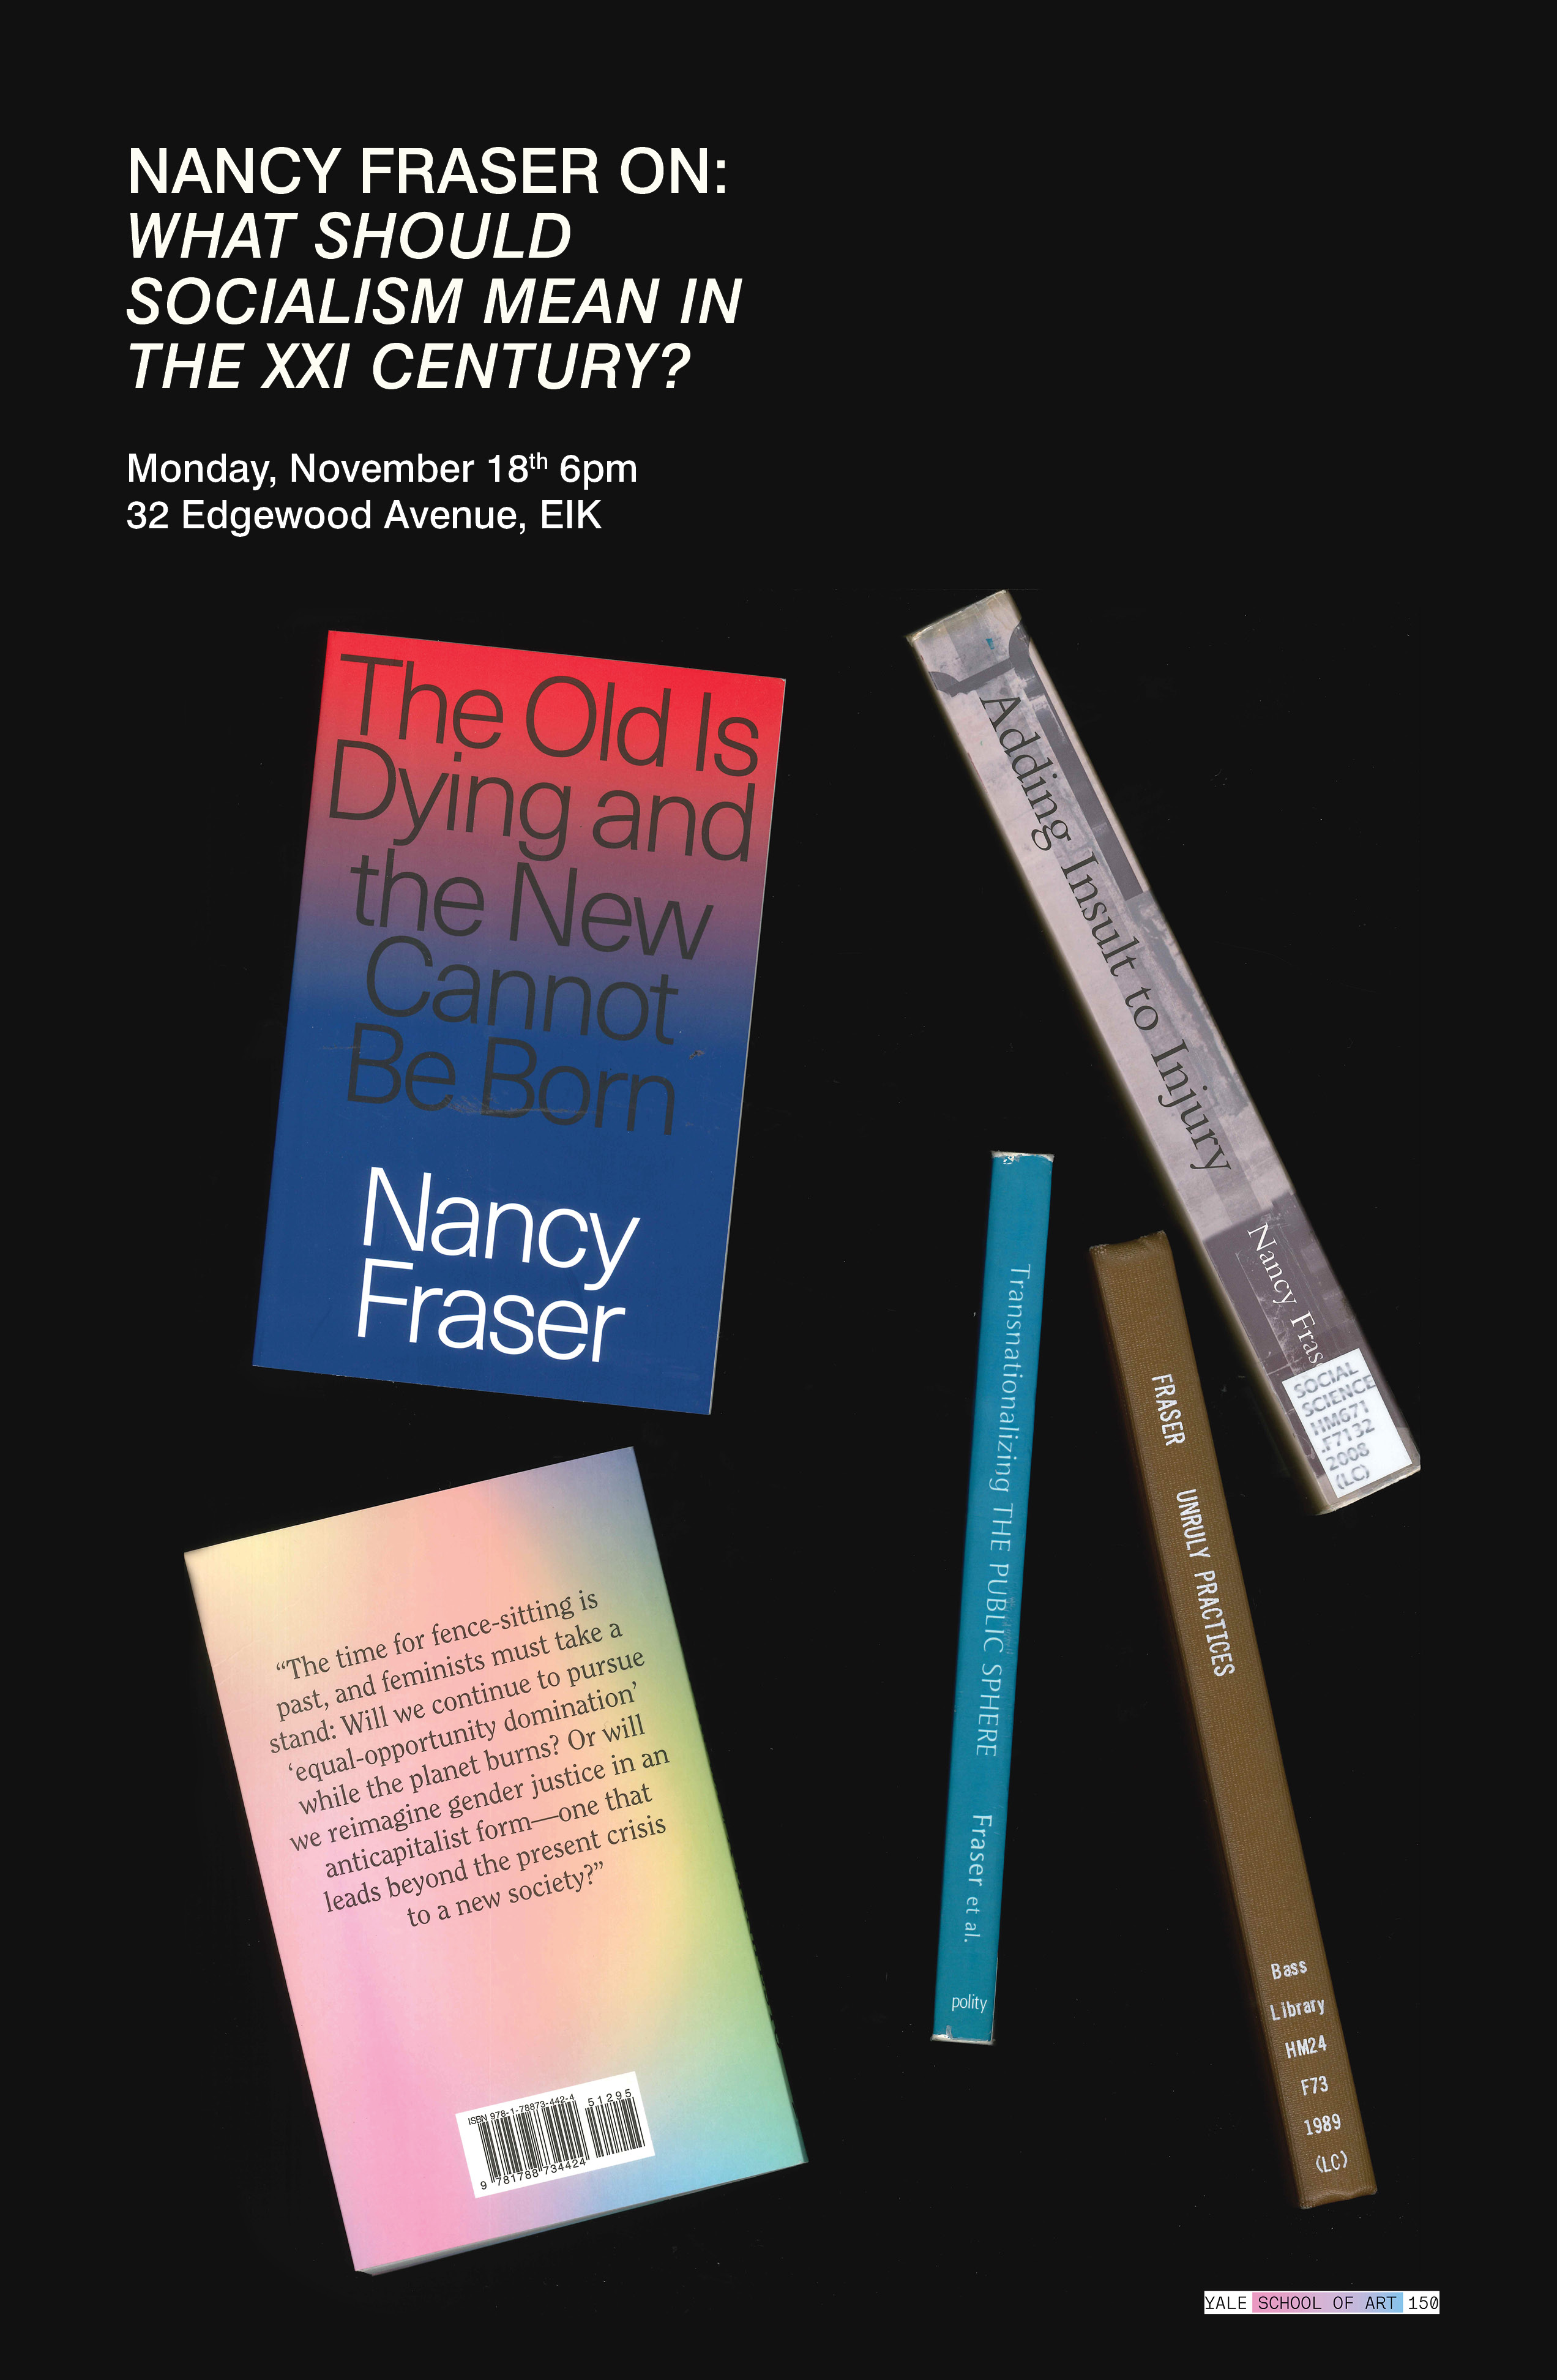 """Covers for Nancy Fraser's most recent books. Left: """"The Old Is Dying and the New Cannot Be Born: From Progressive Neoliberalism to Trump and Beyond"""" (Verso, April 2019). Right: """"Feminism for the 99%: A Manifesto,"""" coauthored with Cinzia Arruzza and Tithi Bhattacharya. (Verso, March 2019)."""